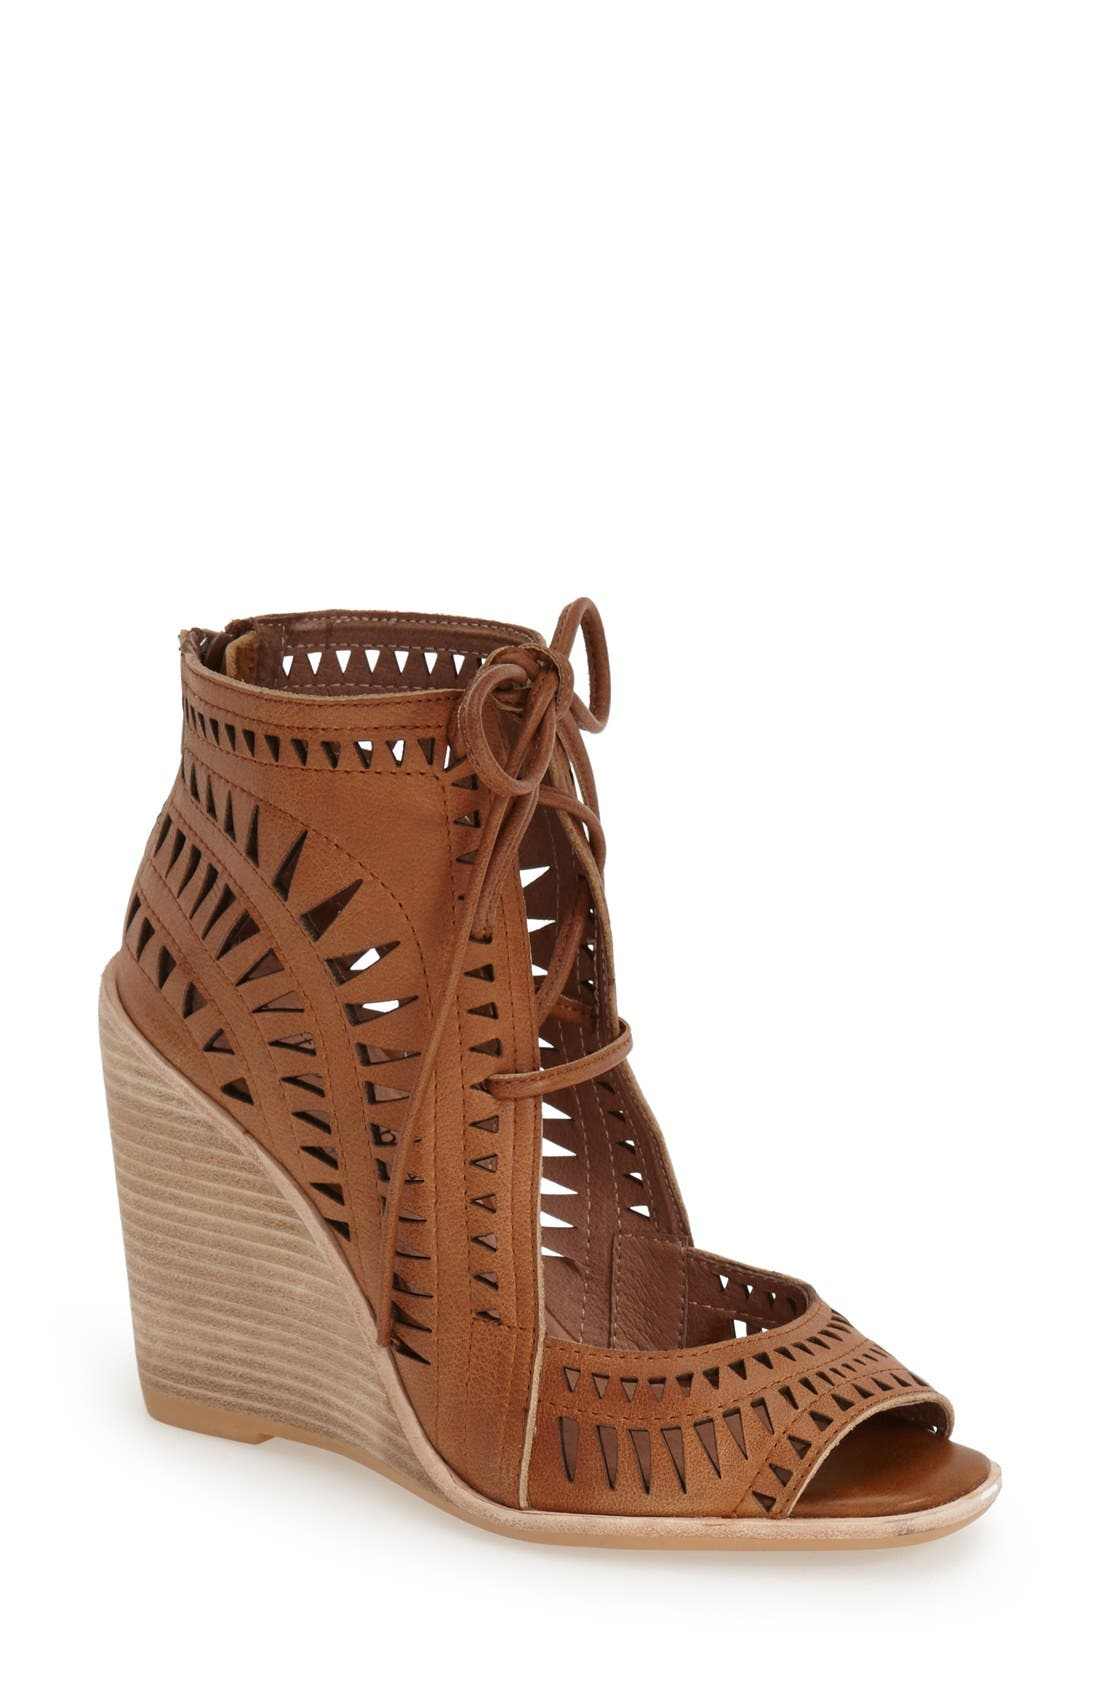 Main Image - Jeffrey Campbell 'Rodillo-Hi' Wedge Sandal (Women)